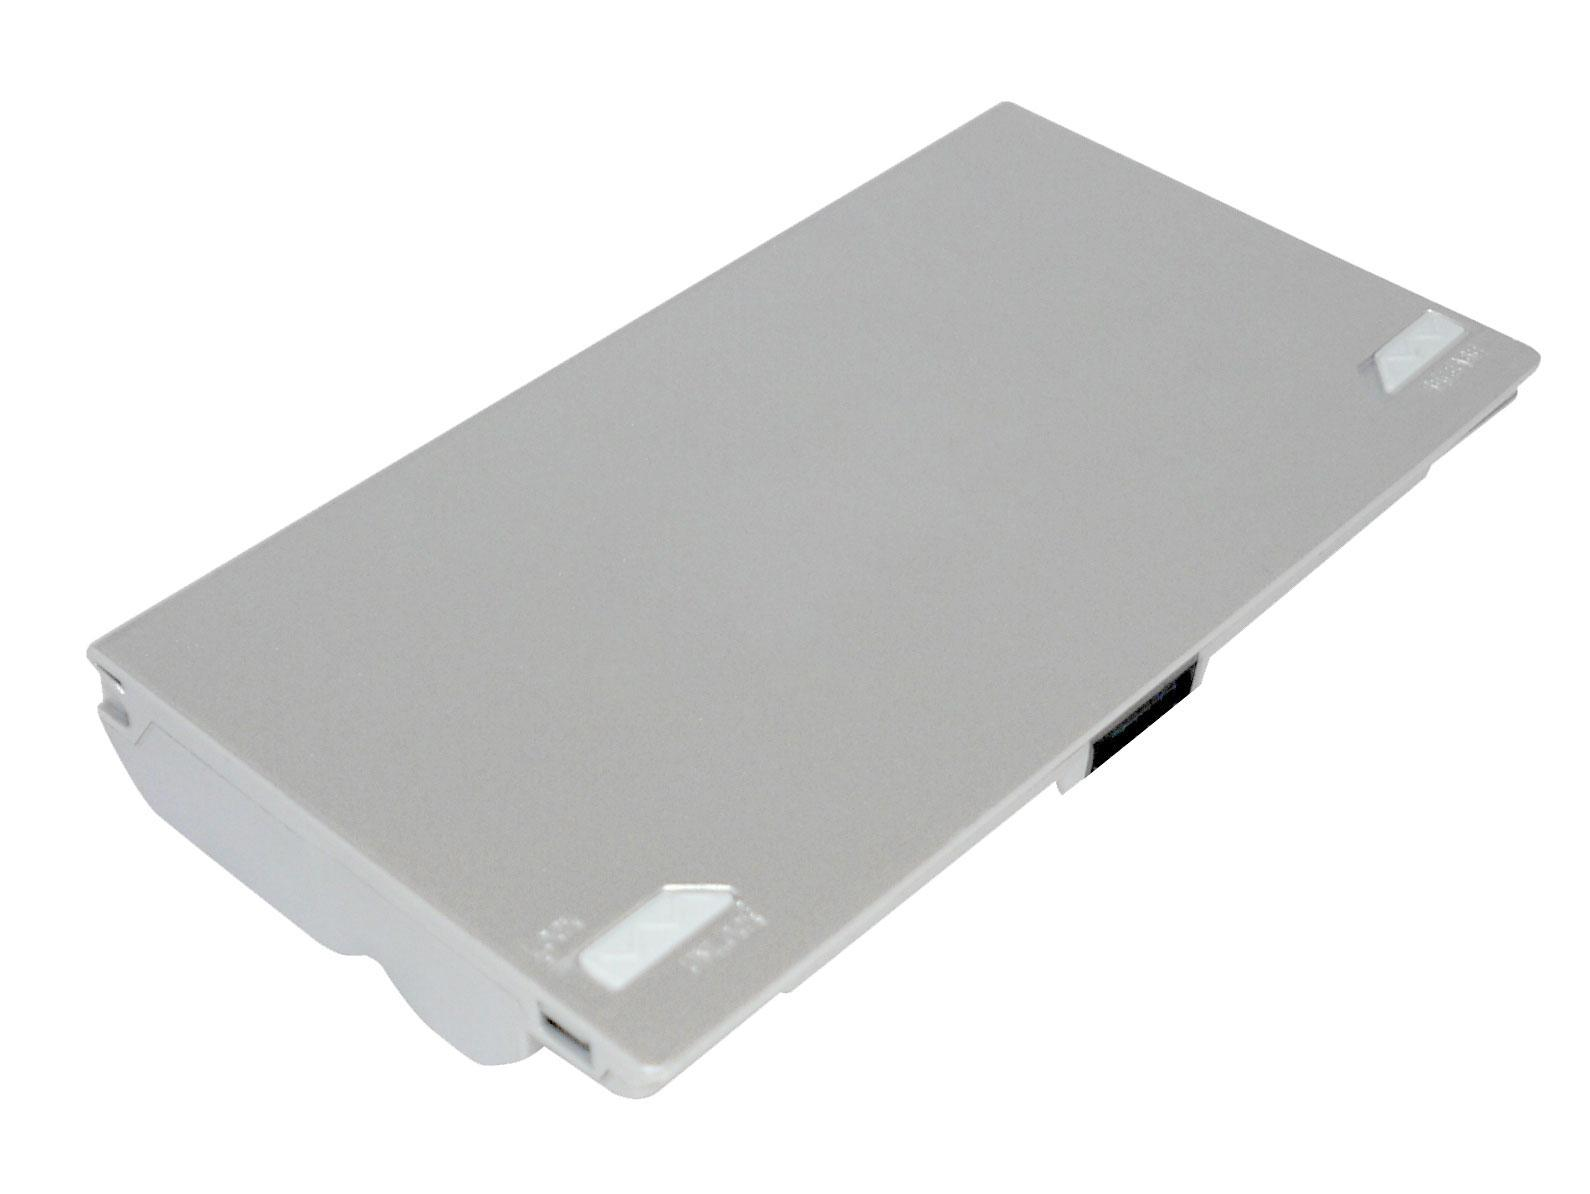 Replacement Sony VAIO VGN-FZ71B Battery